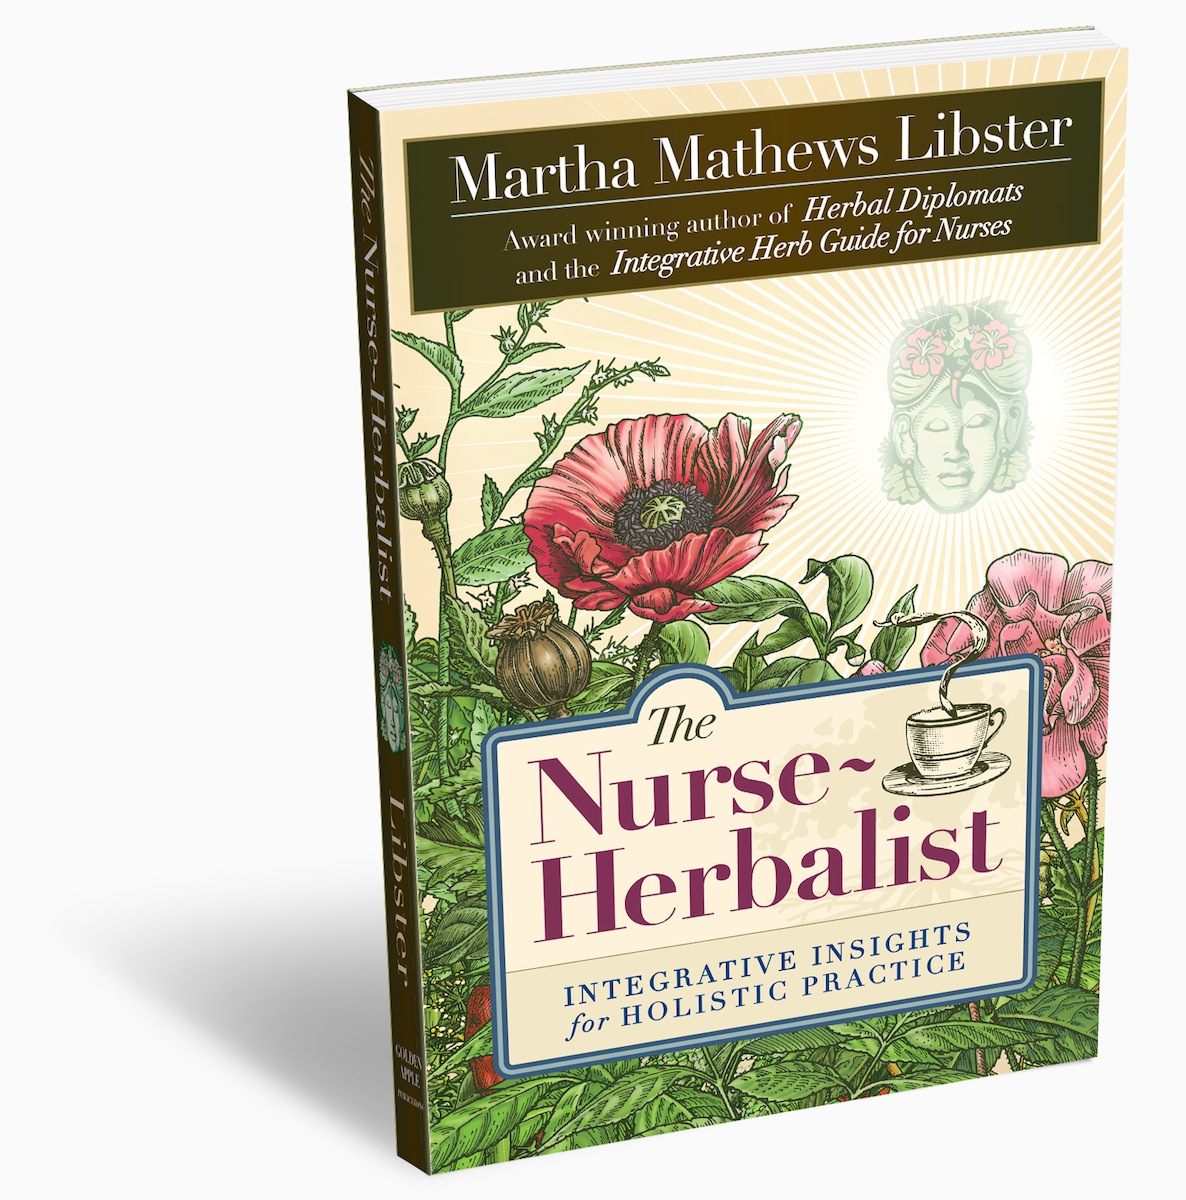 The Nurse Herbalist - Integrative Insights for Holistic Practice